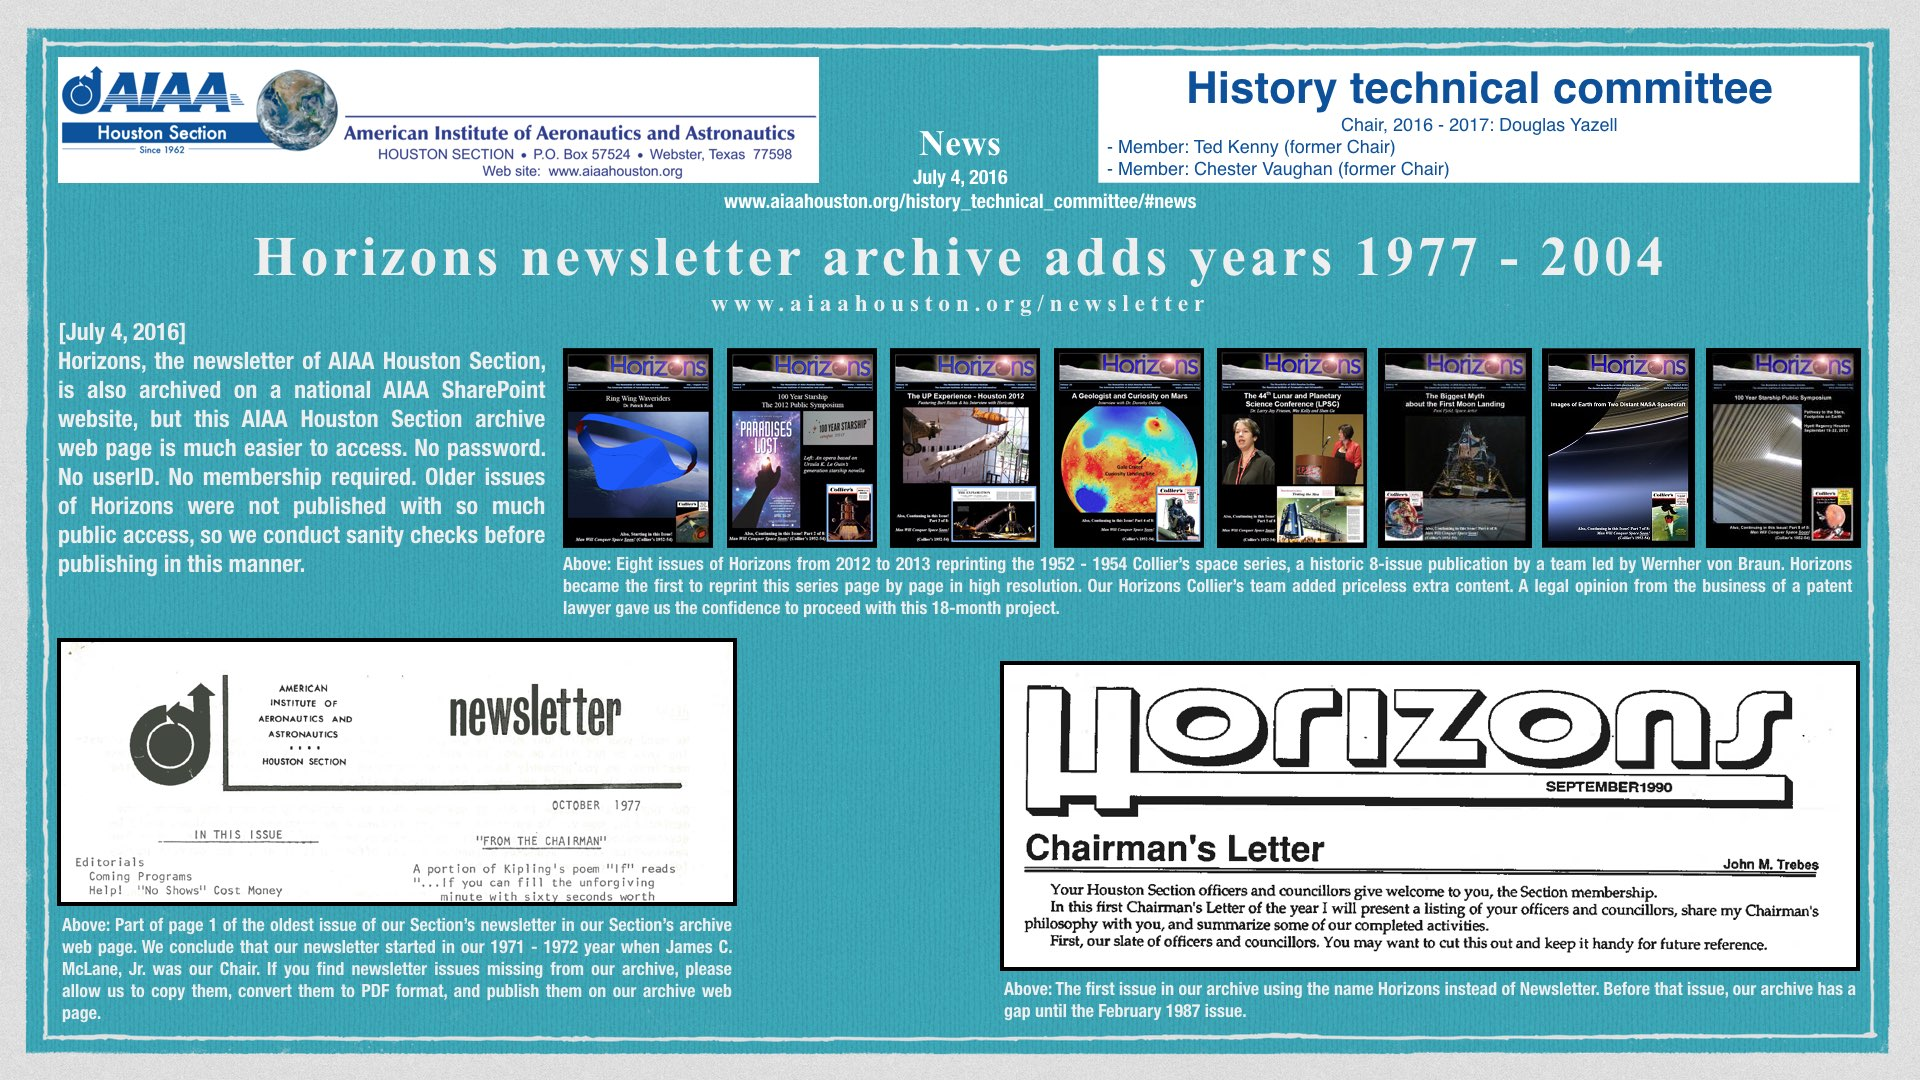 Above: A JPEG image serving as a reminder that the AIAA Houston Section Horizons newsletter archive web page is now updated to add more than issues from 1977 to 2004. (Click to zoom.)